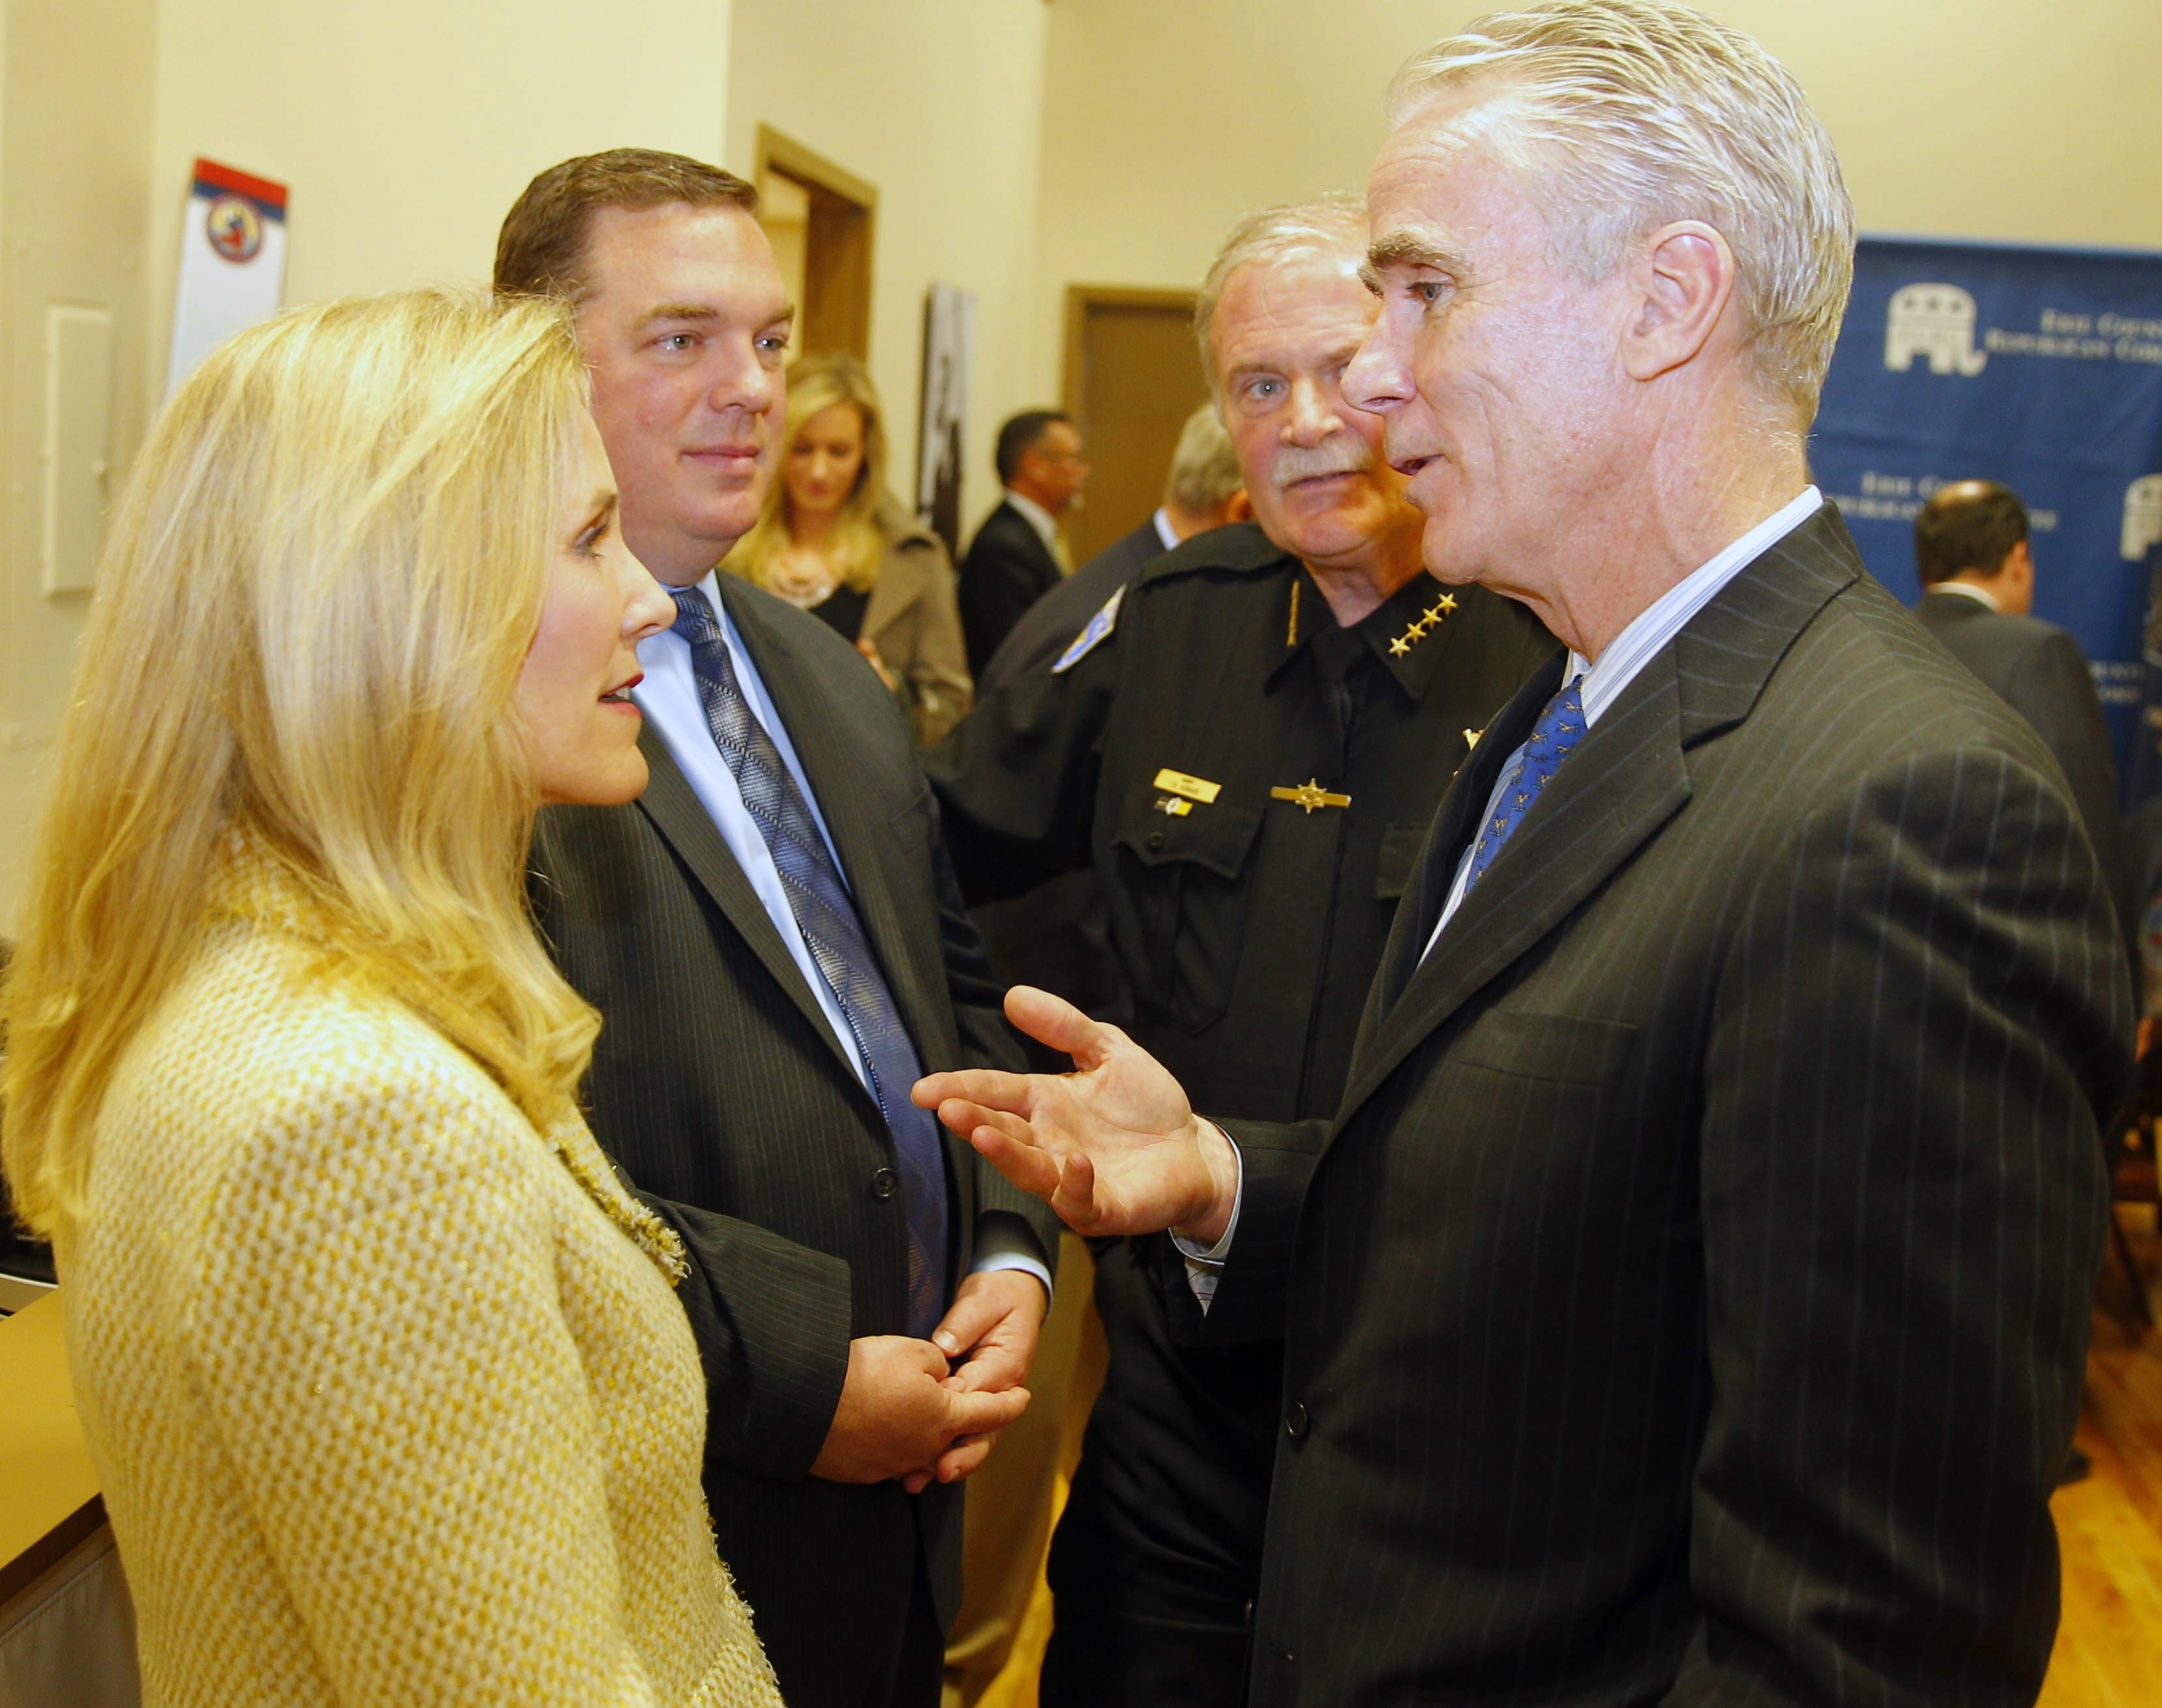 John Cahill, right, talks with, from left, Assemblywoman Jane Corwin, Assemblyman Ray Walter and Erie County Sheriff Tim Howard in Buffalo on Friday.